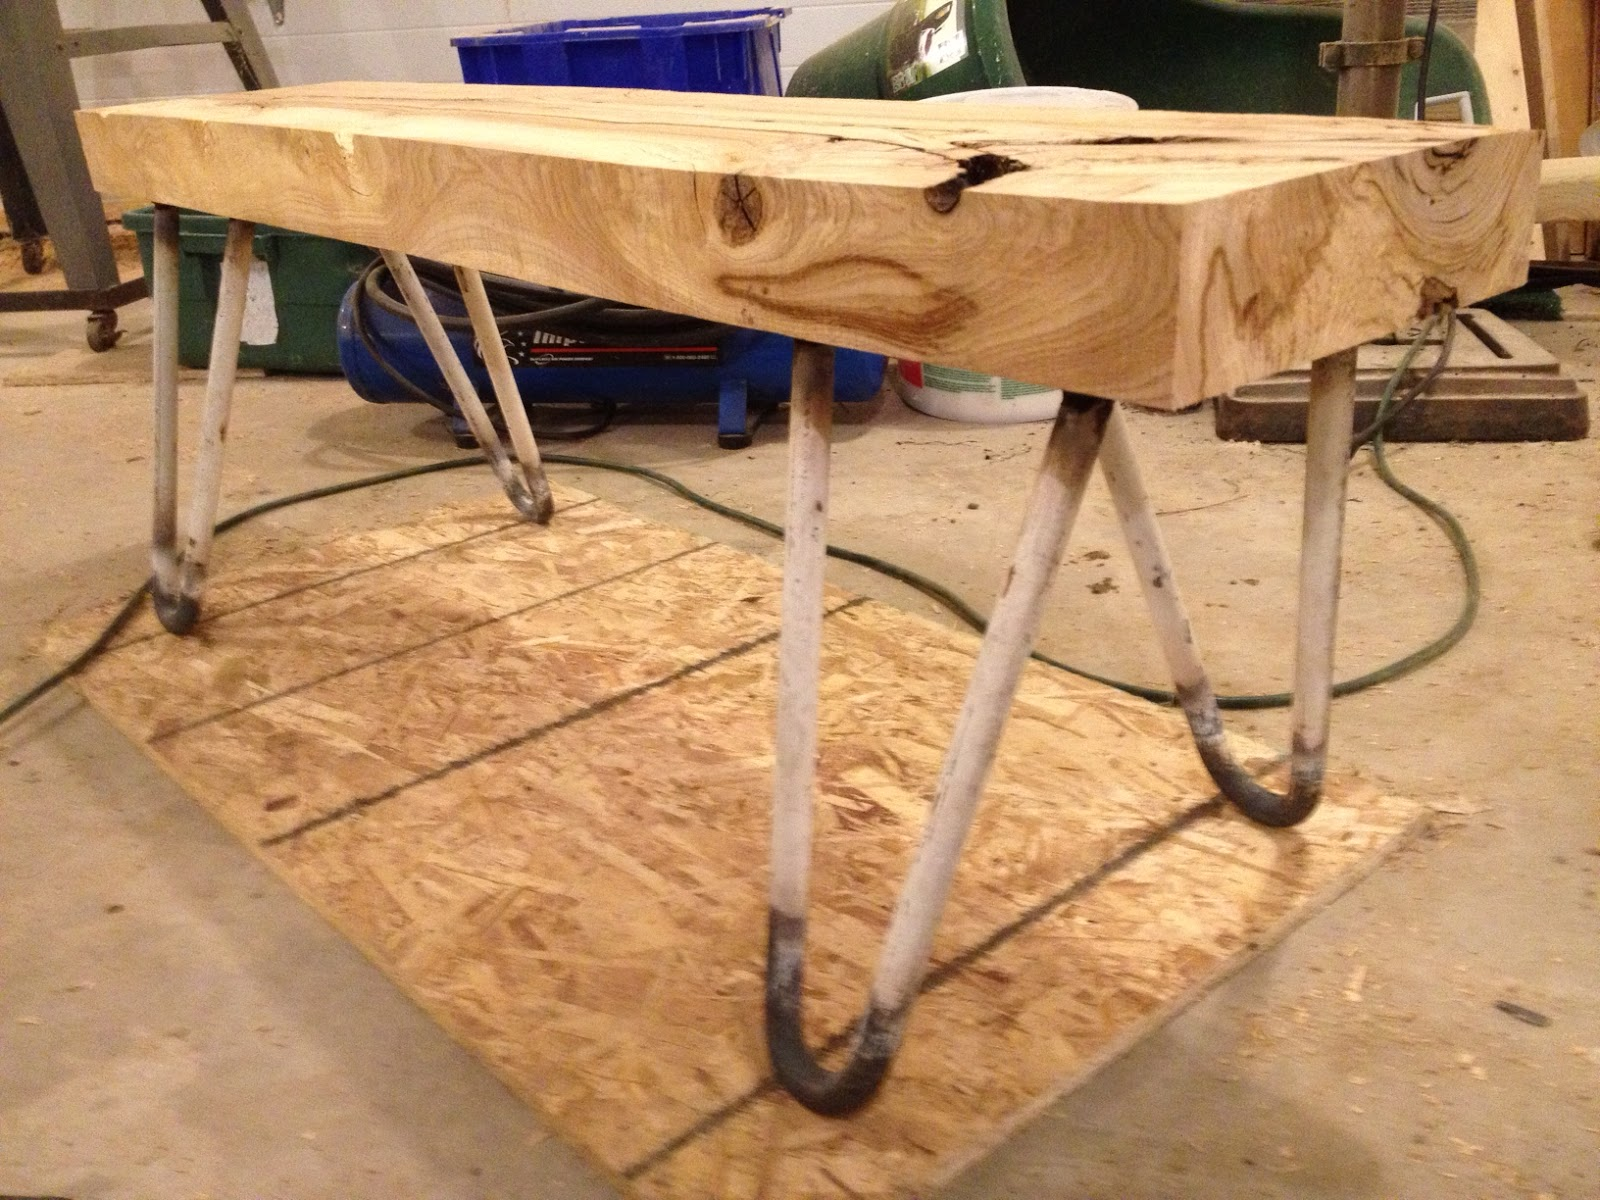 Uncategorized How To Attach Hairpin Legs black ash bench and homemade hairpin legs thisoldtable next step bending hair pin welding them to square plates attach the here they are pre paint